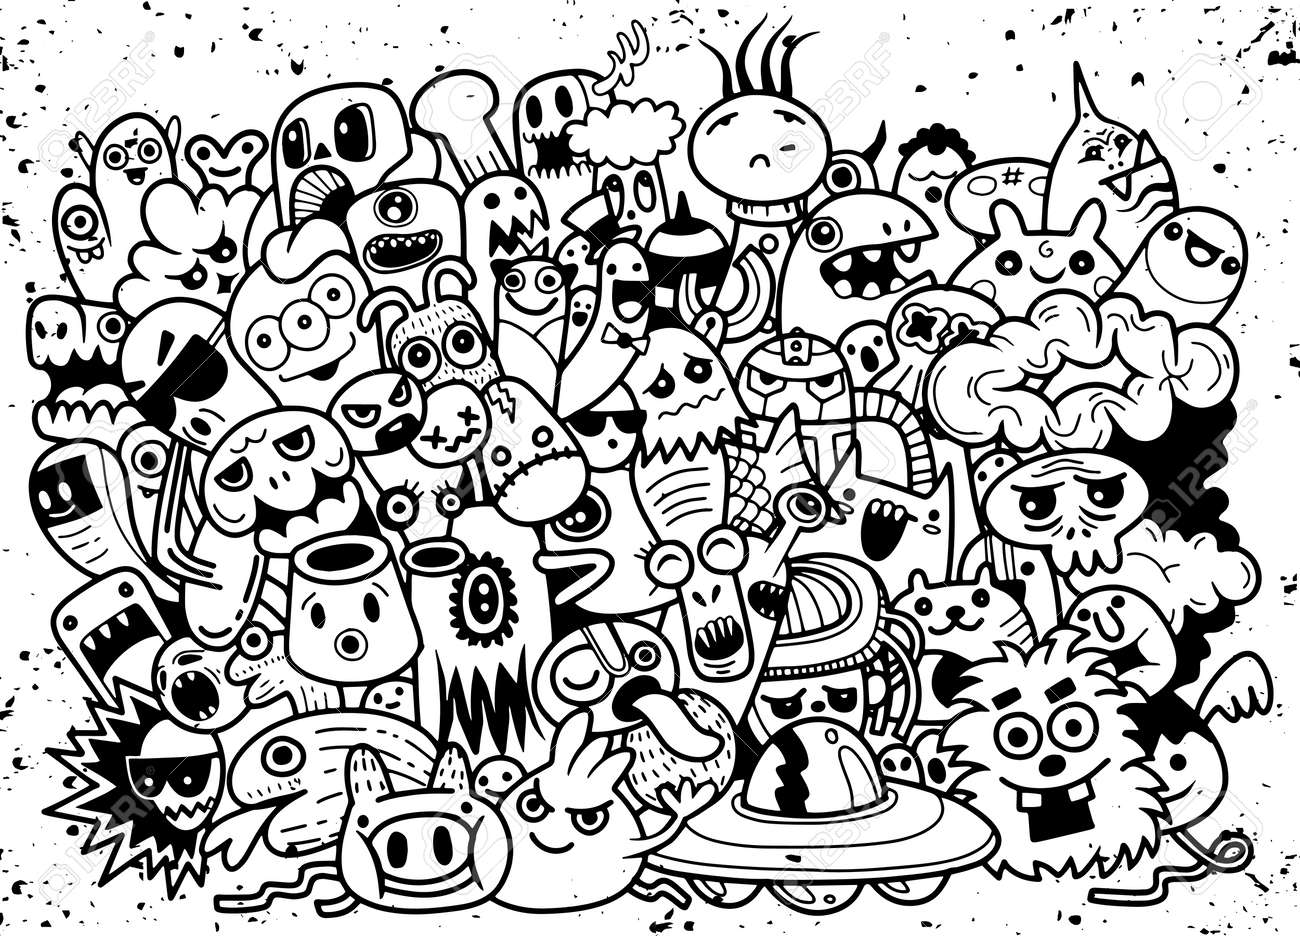 Funny monsters pattern for coloring book. Black and white background. Vector illustration - 102545395